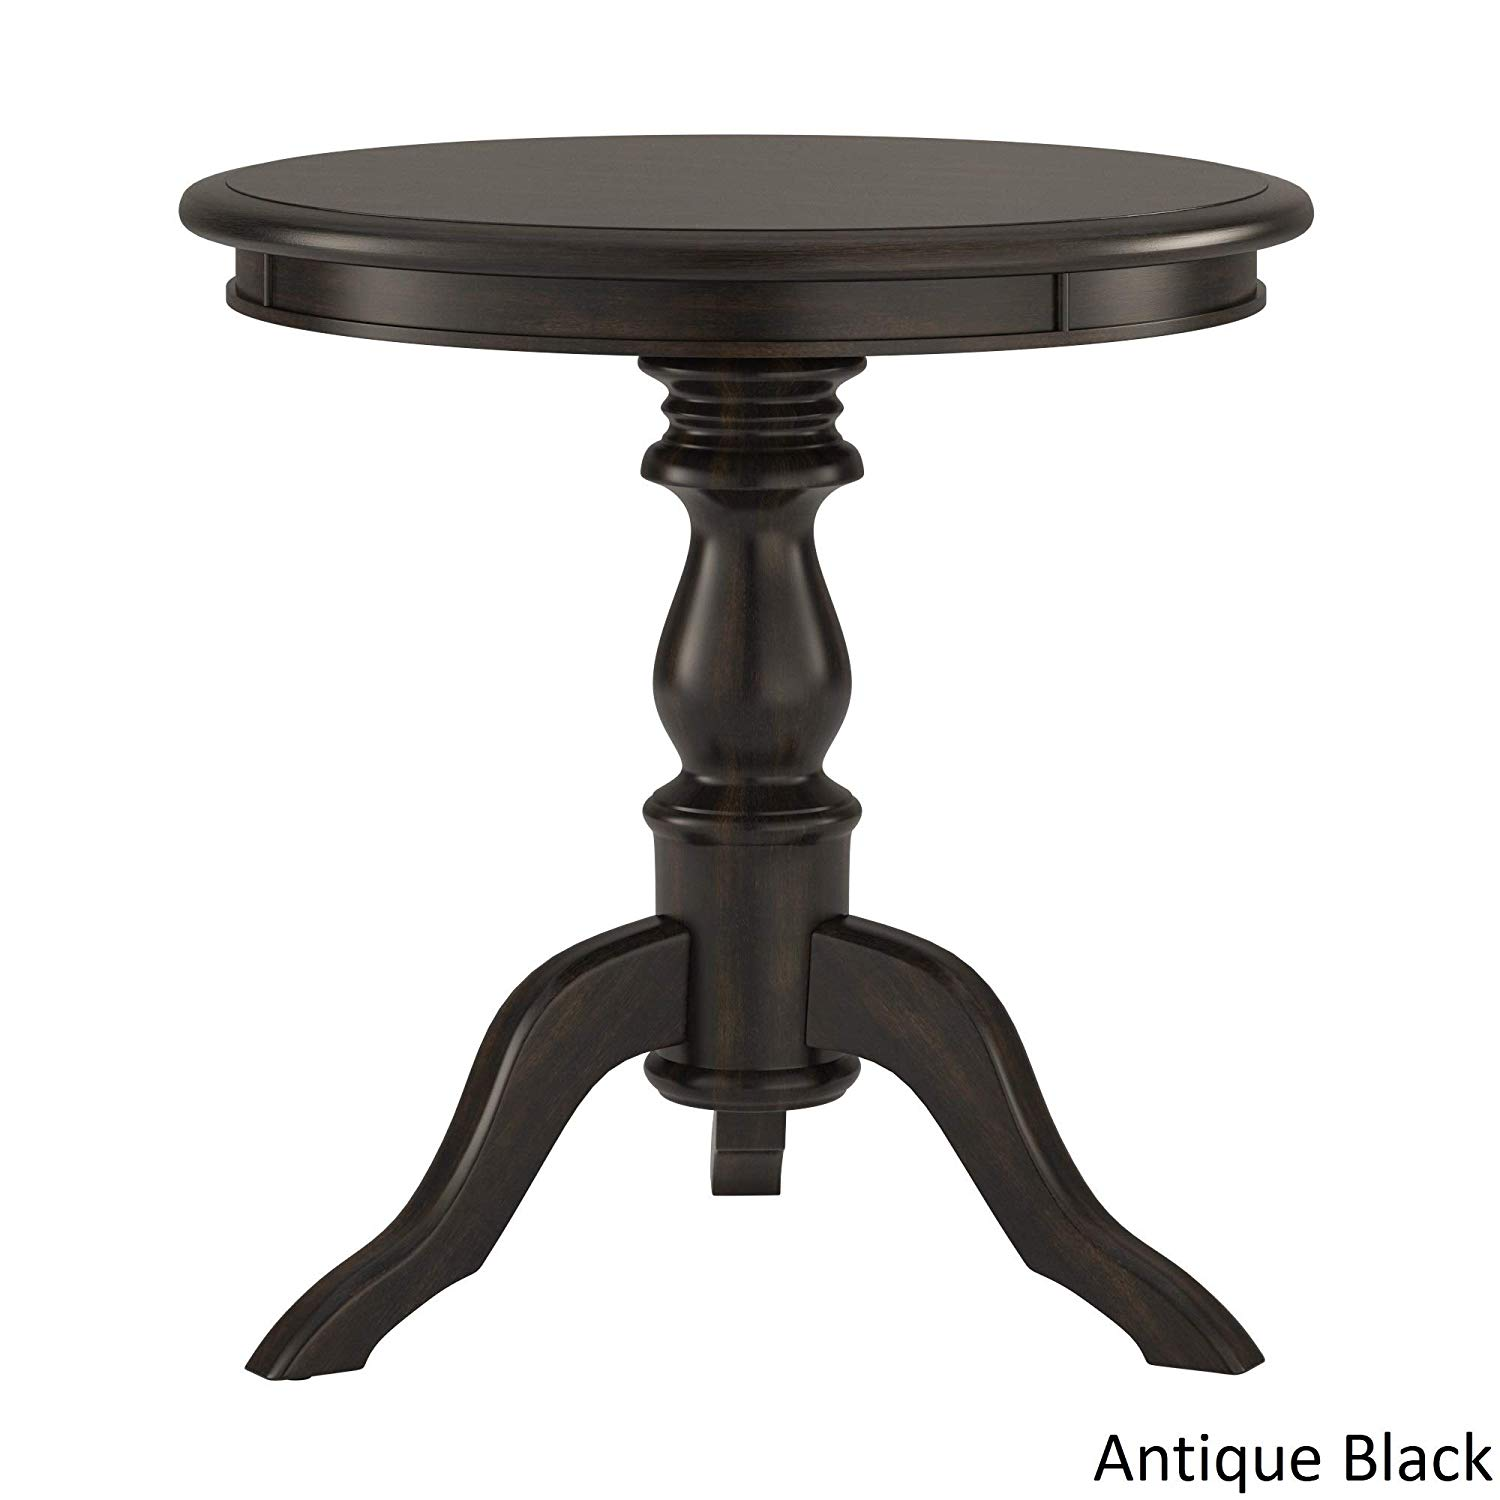 beckett antique wood pedestal accent table inspire oak classic black kitchen dining sportcraft ping pong couch slab furniture pottery barn tables square side with storage pulls